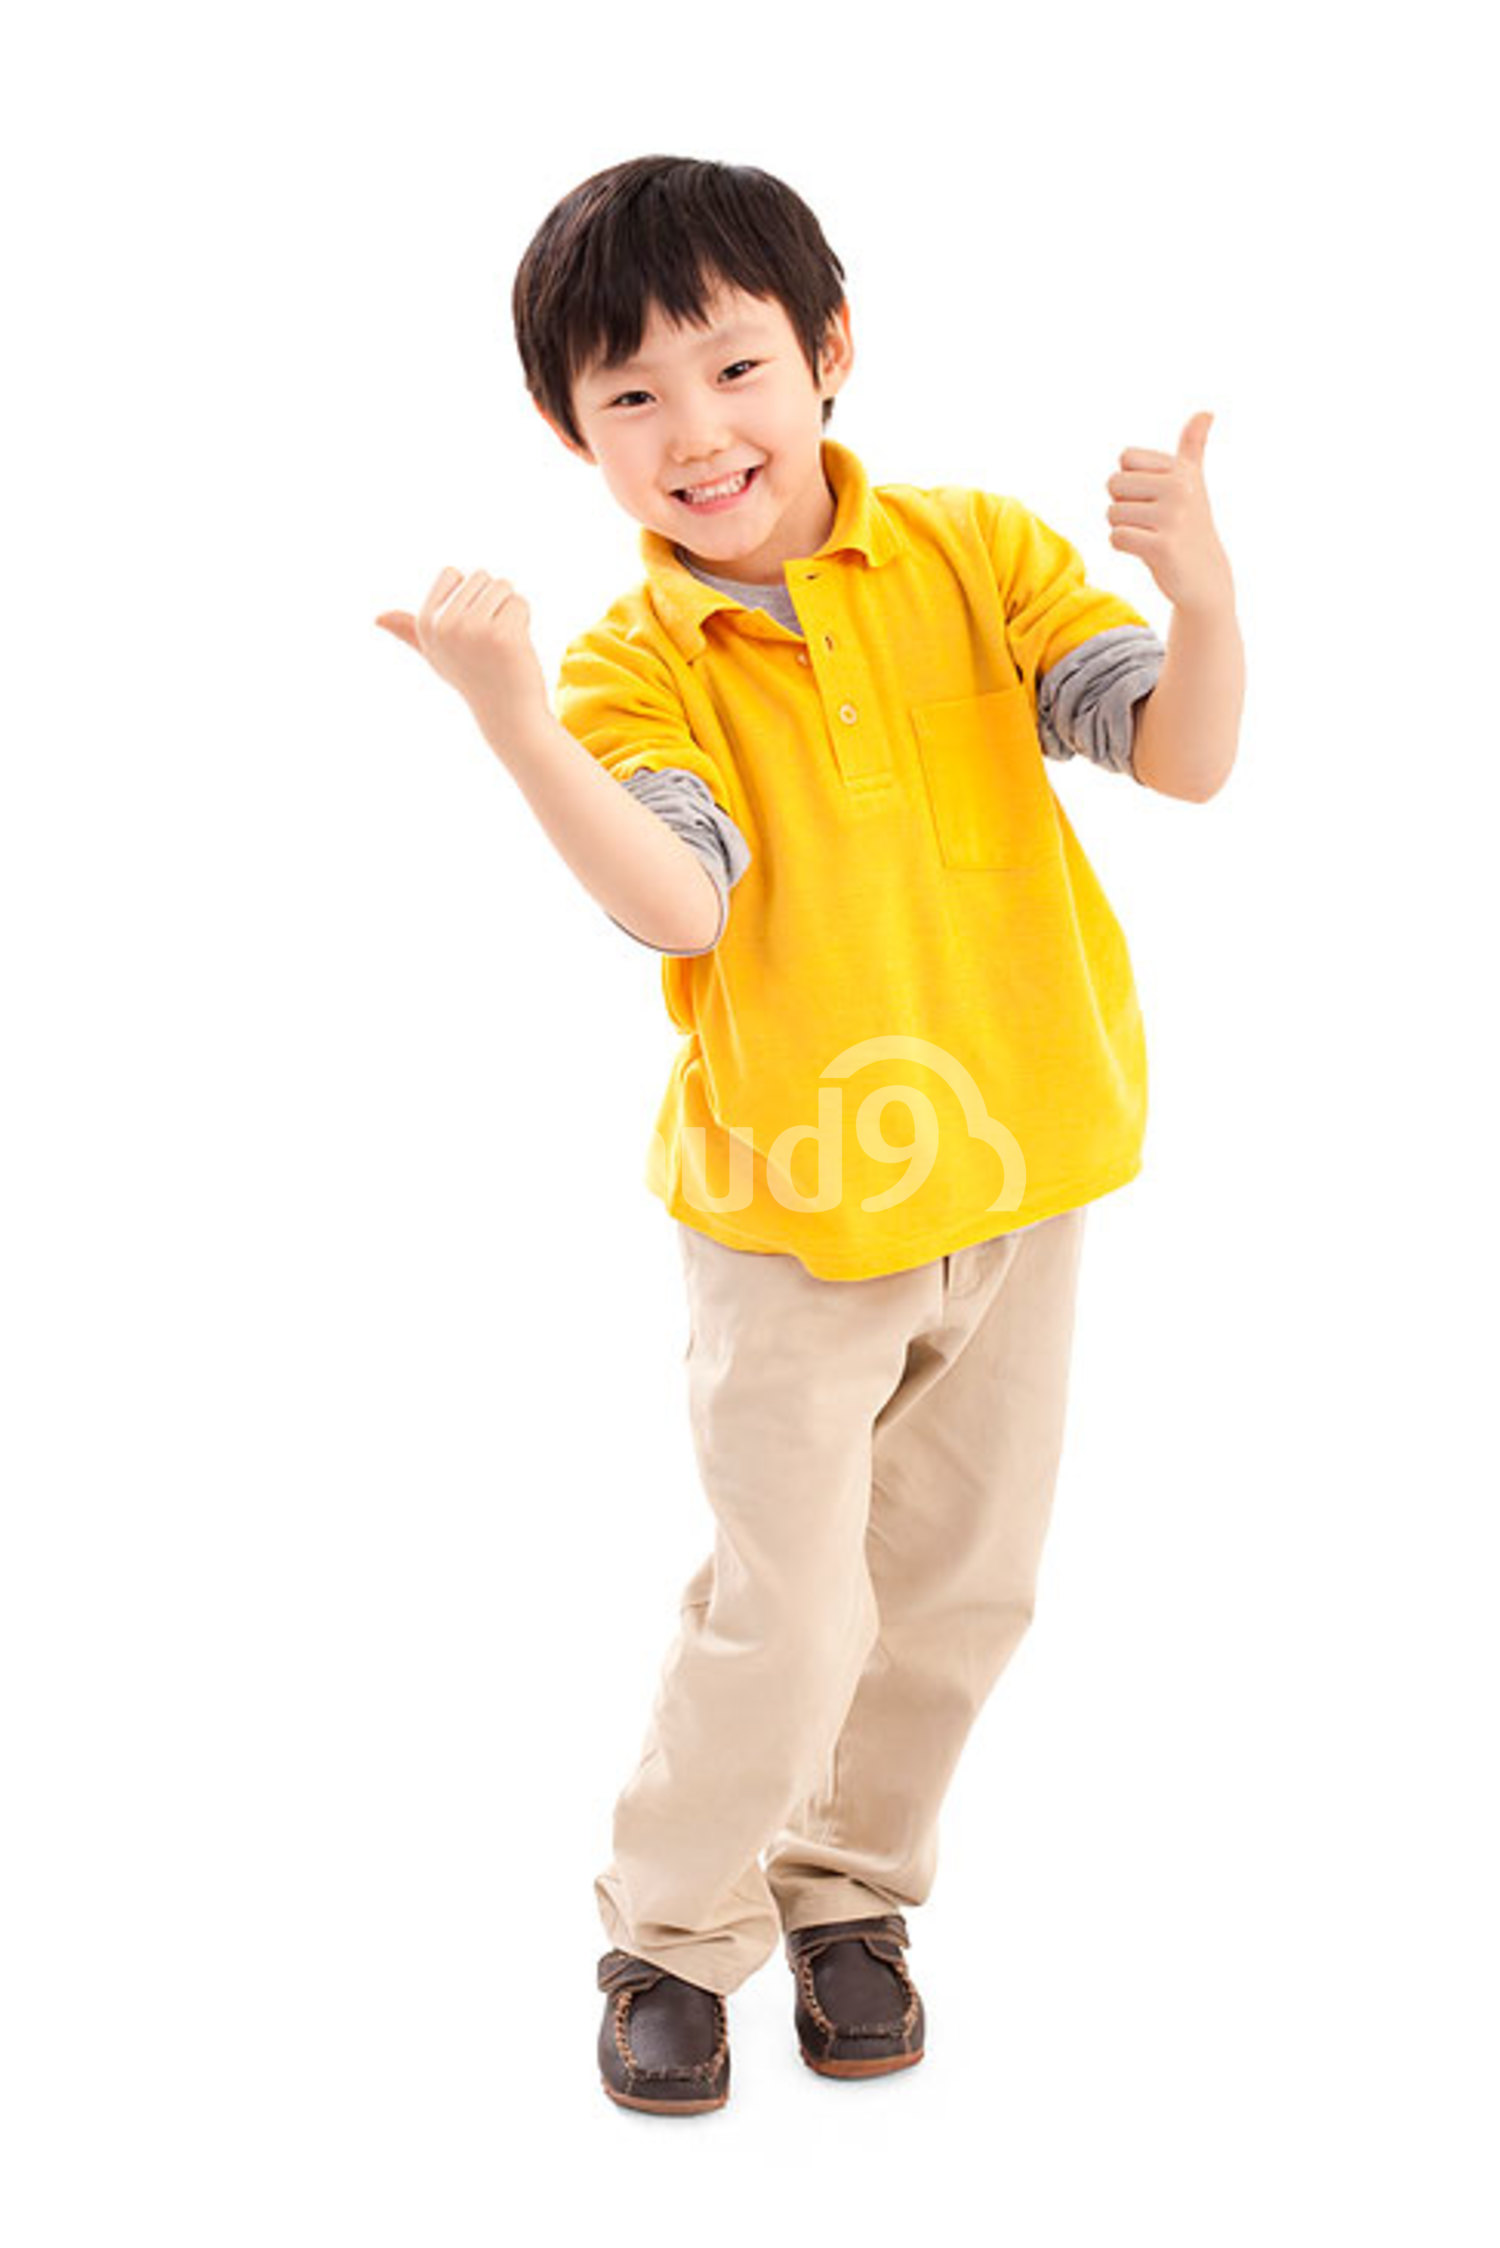 Cute Chinese boy doing thumbs up